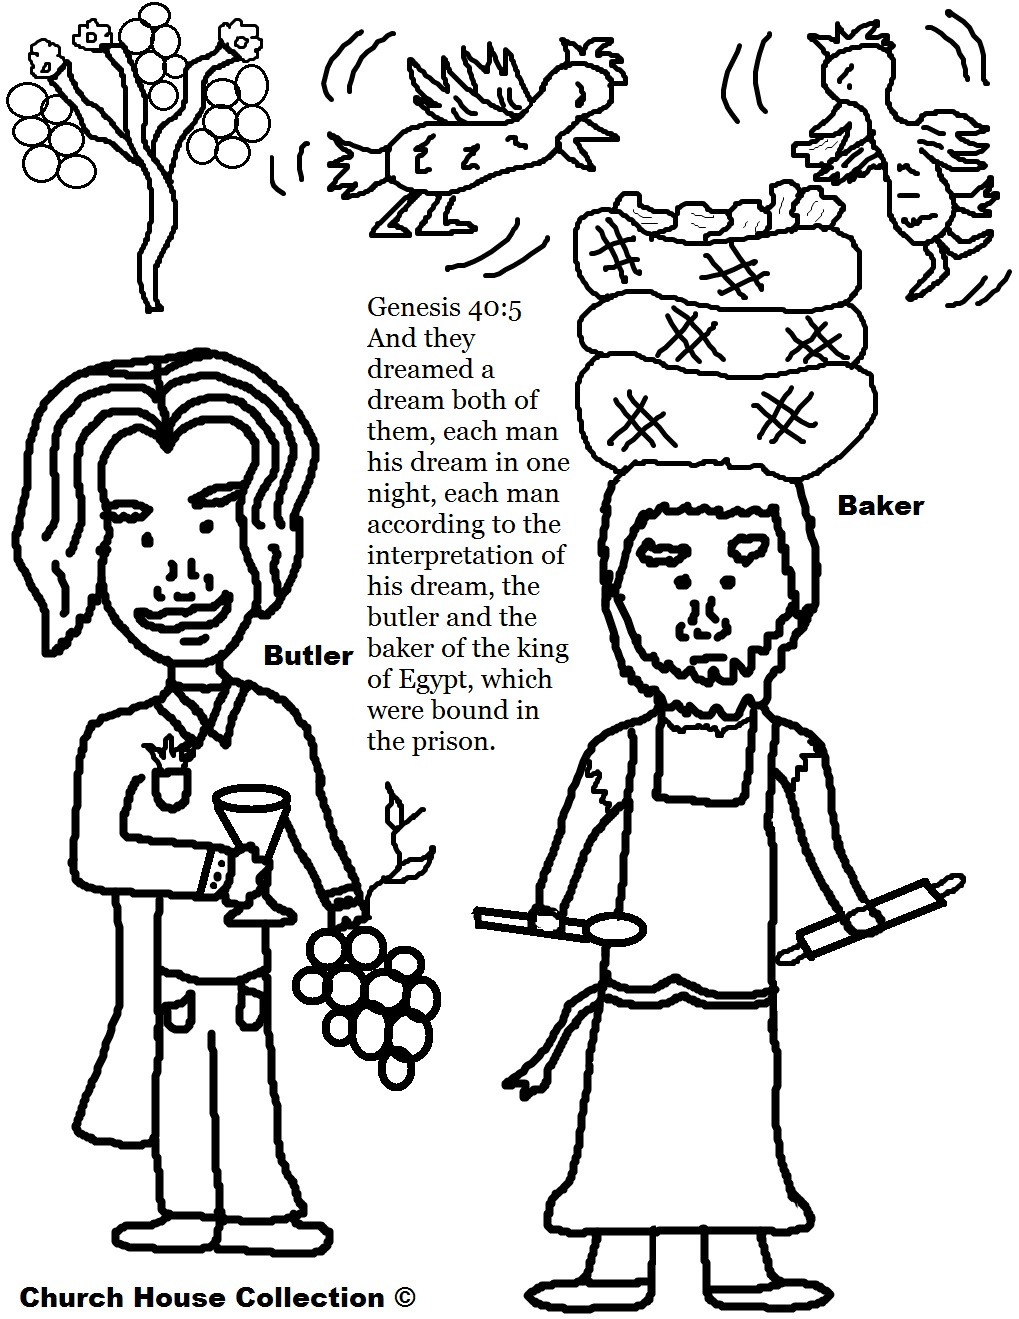 Josephs Butler and Baker Dreams Coloring Page